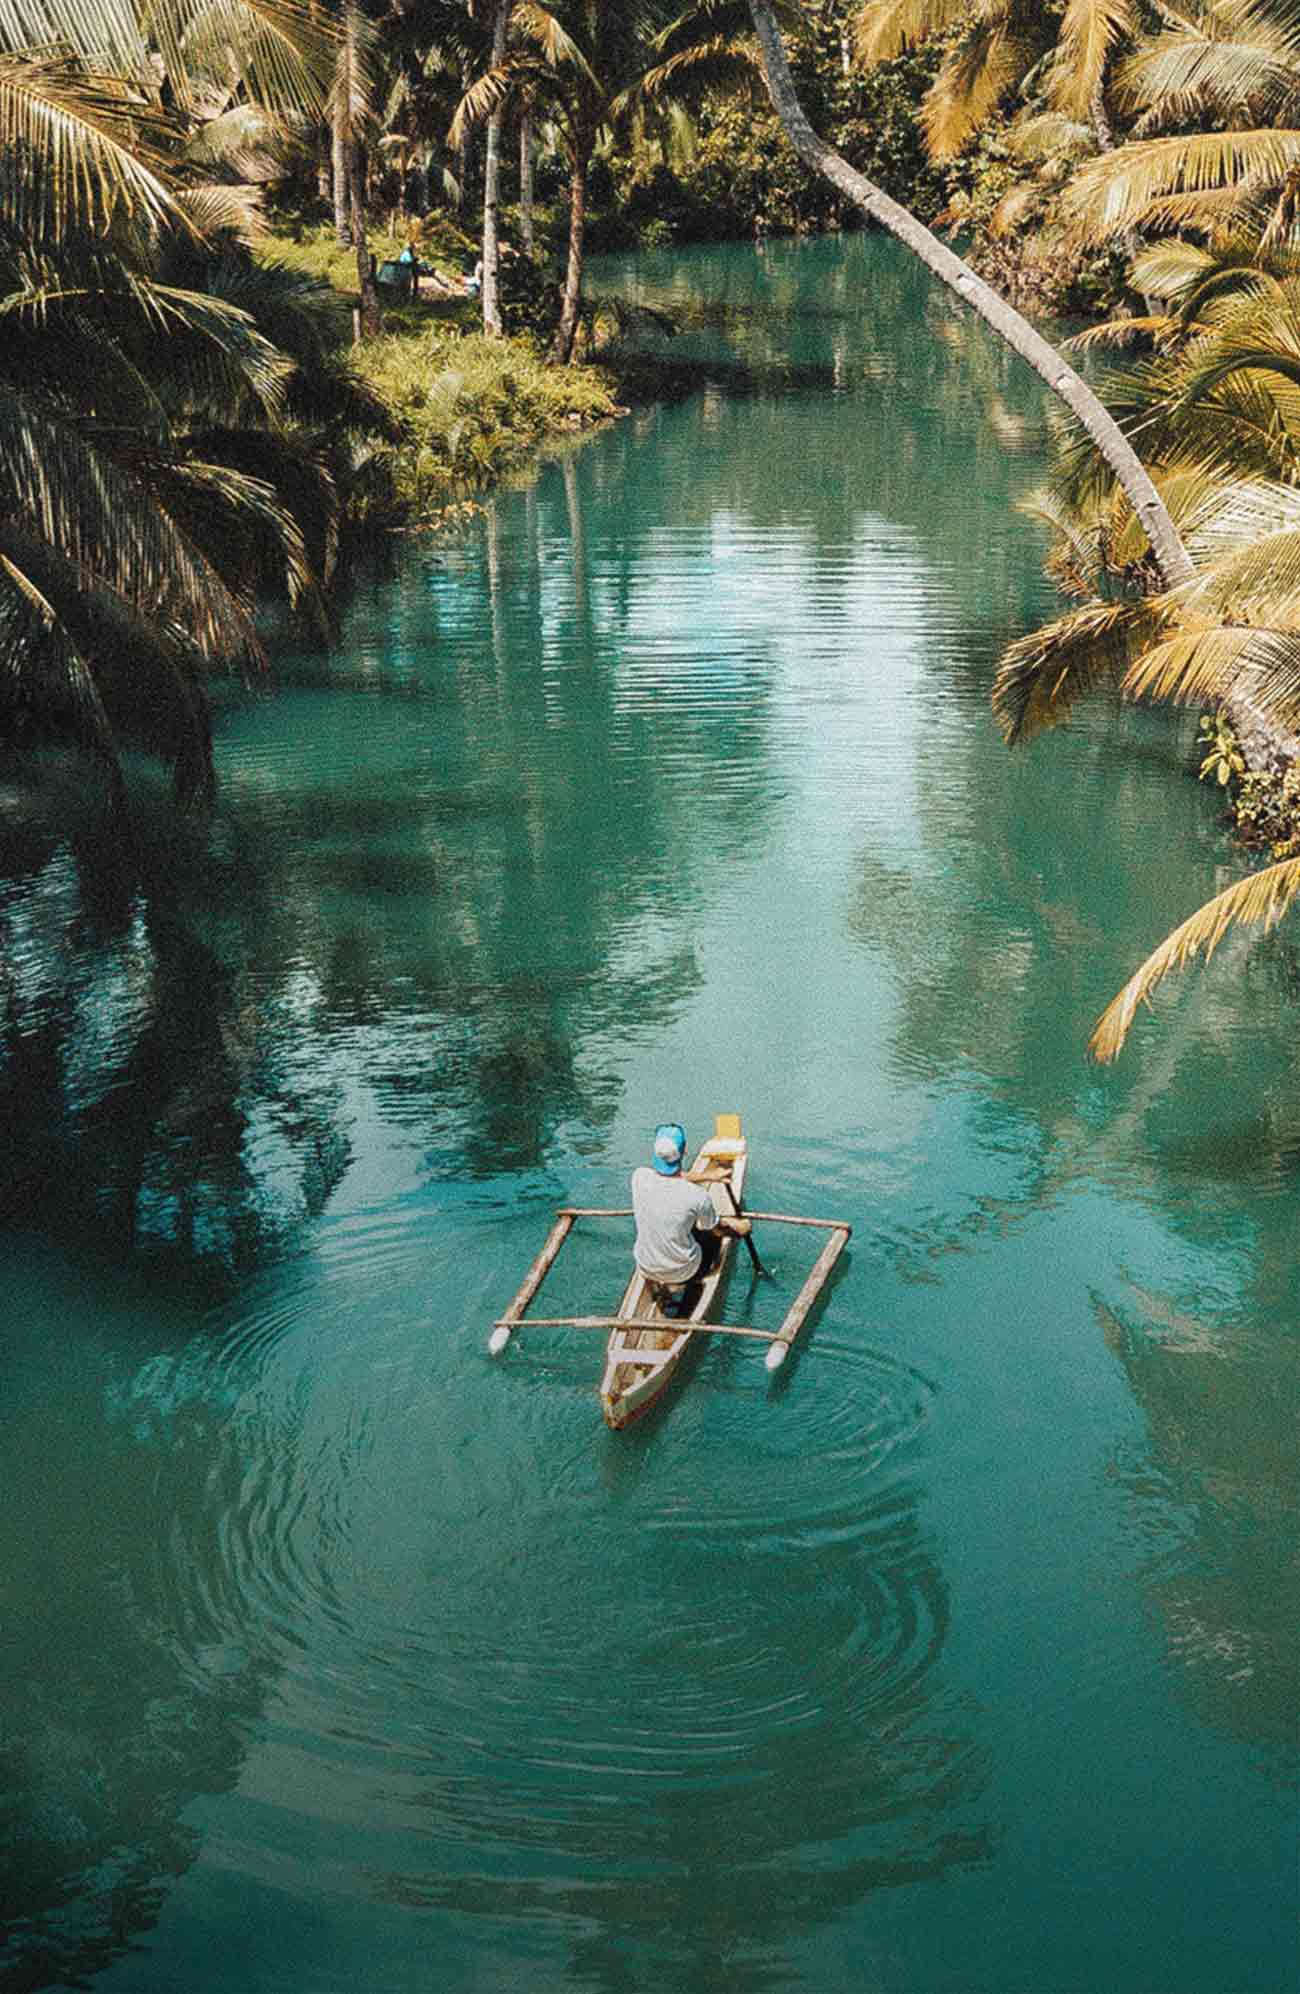 Essential Boating Skills While Travelling